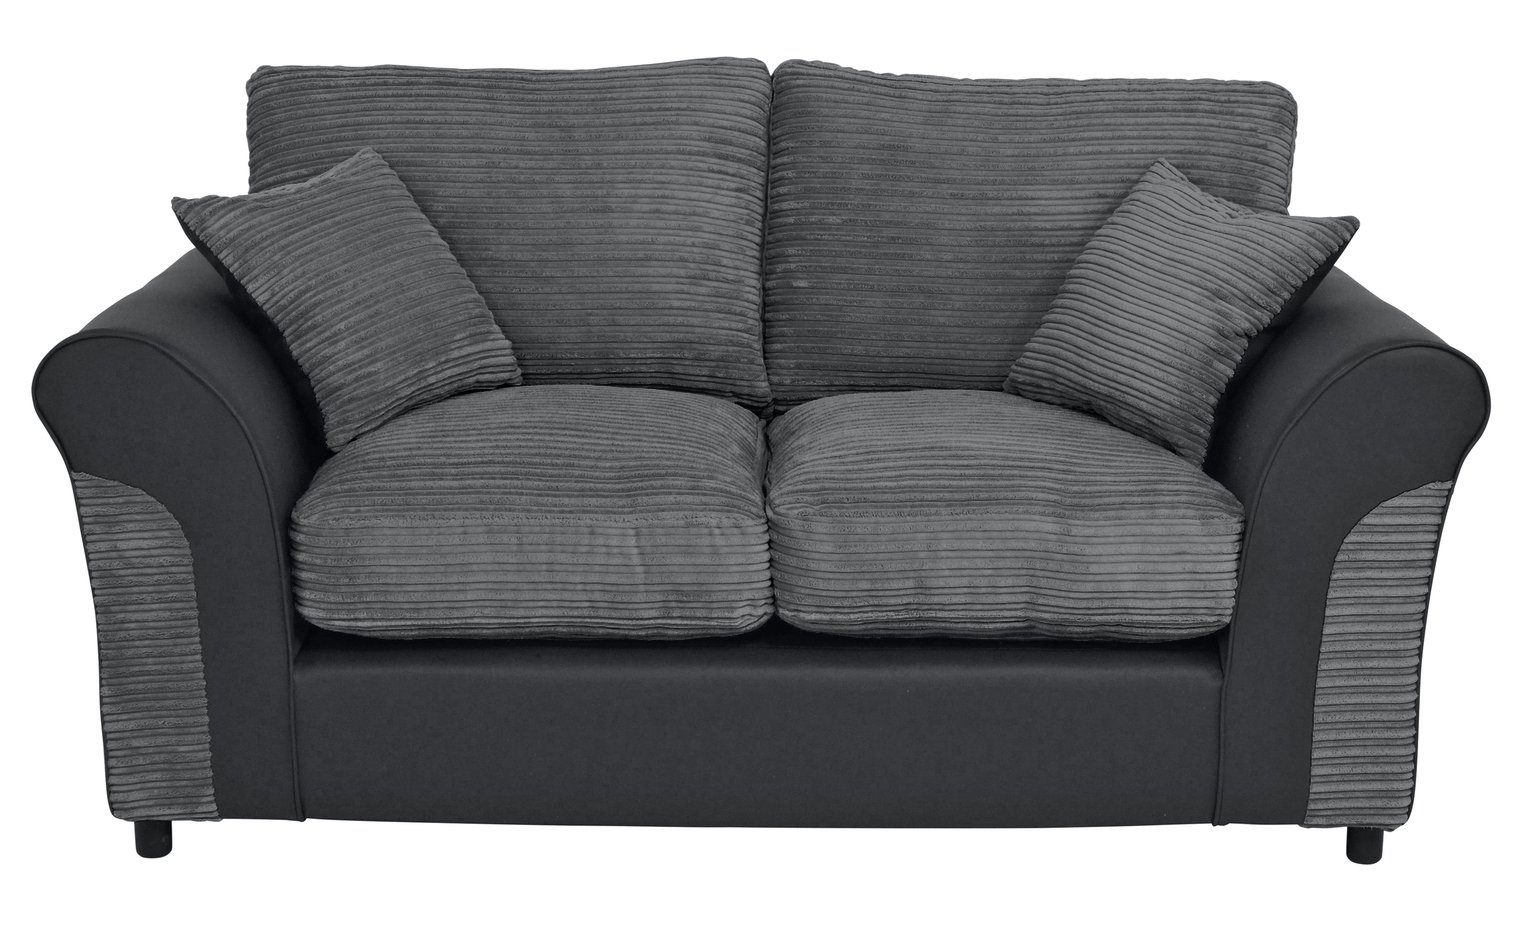 Argos Home Harry 2 Seater Fabric Sofa bed - Charcoal